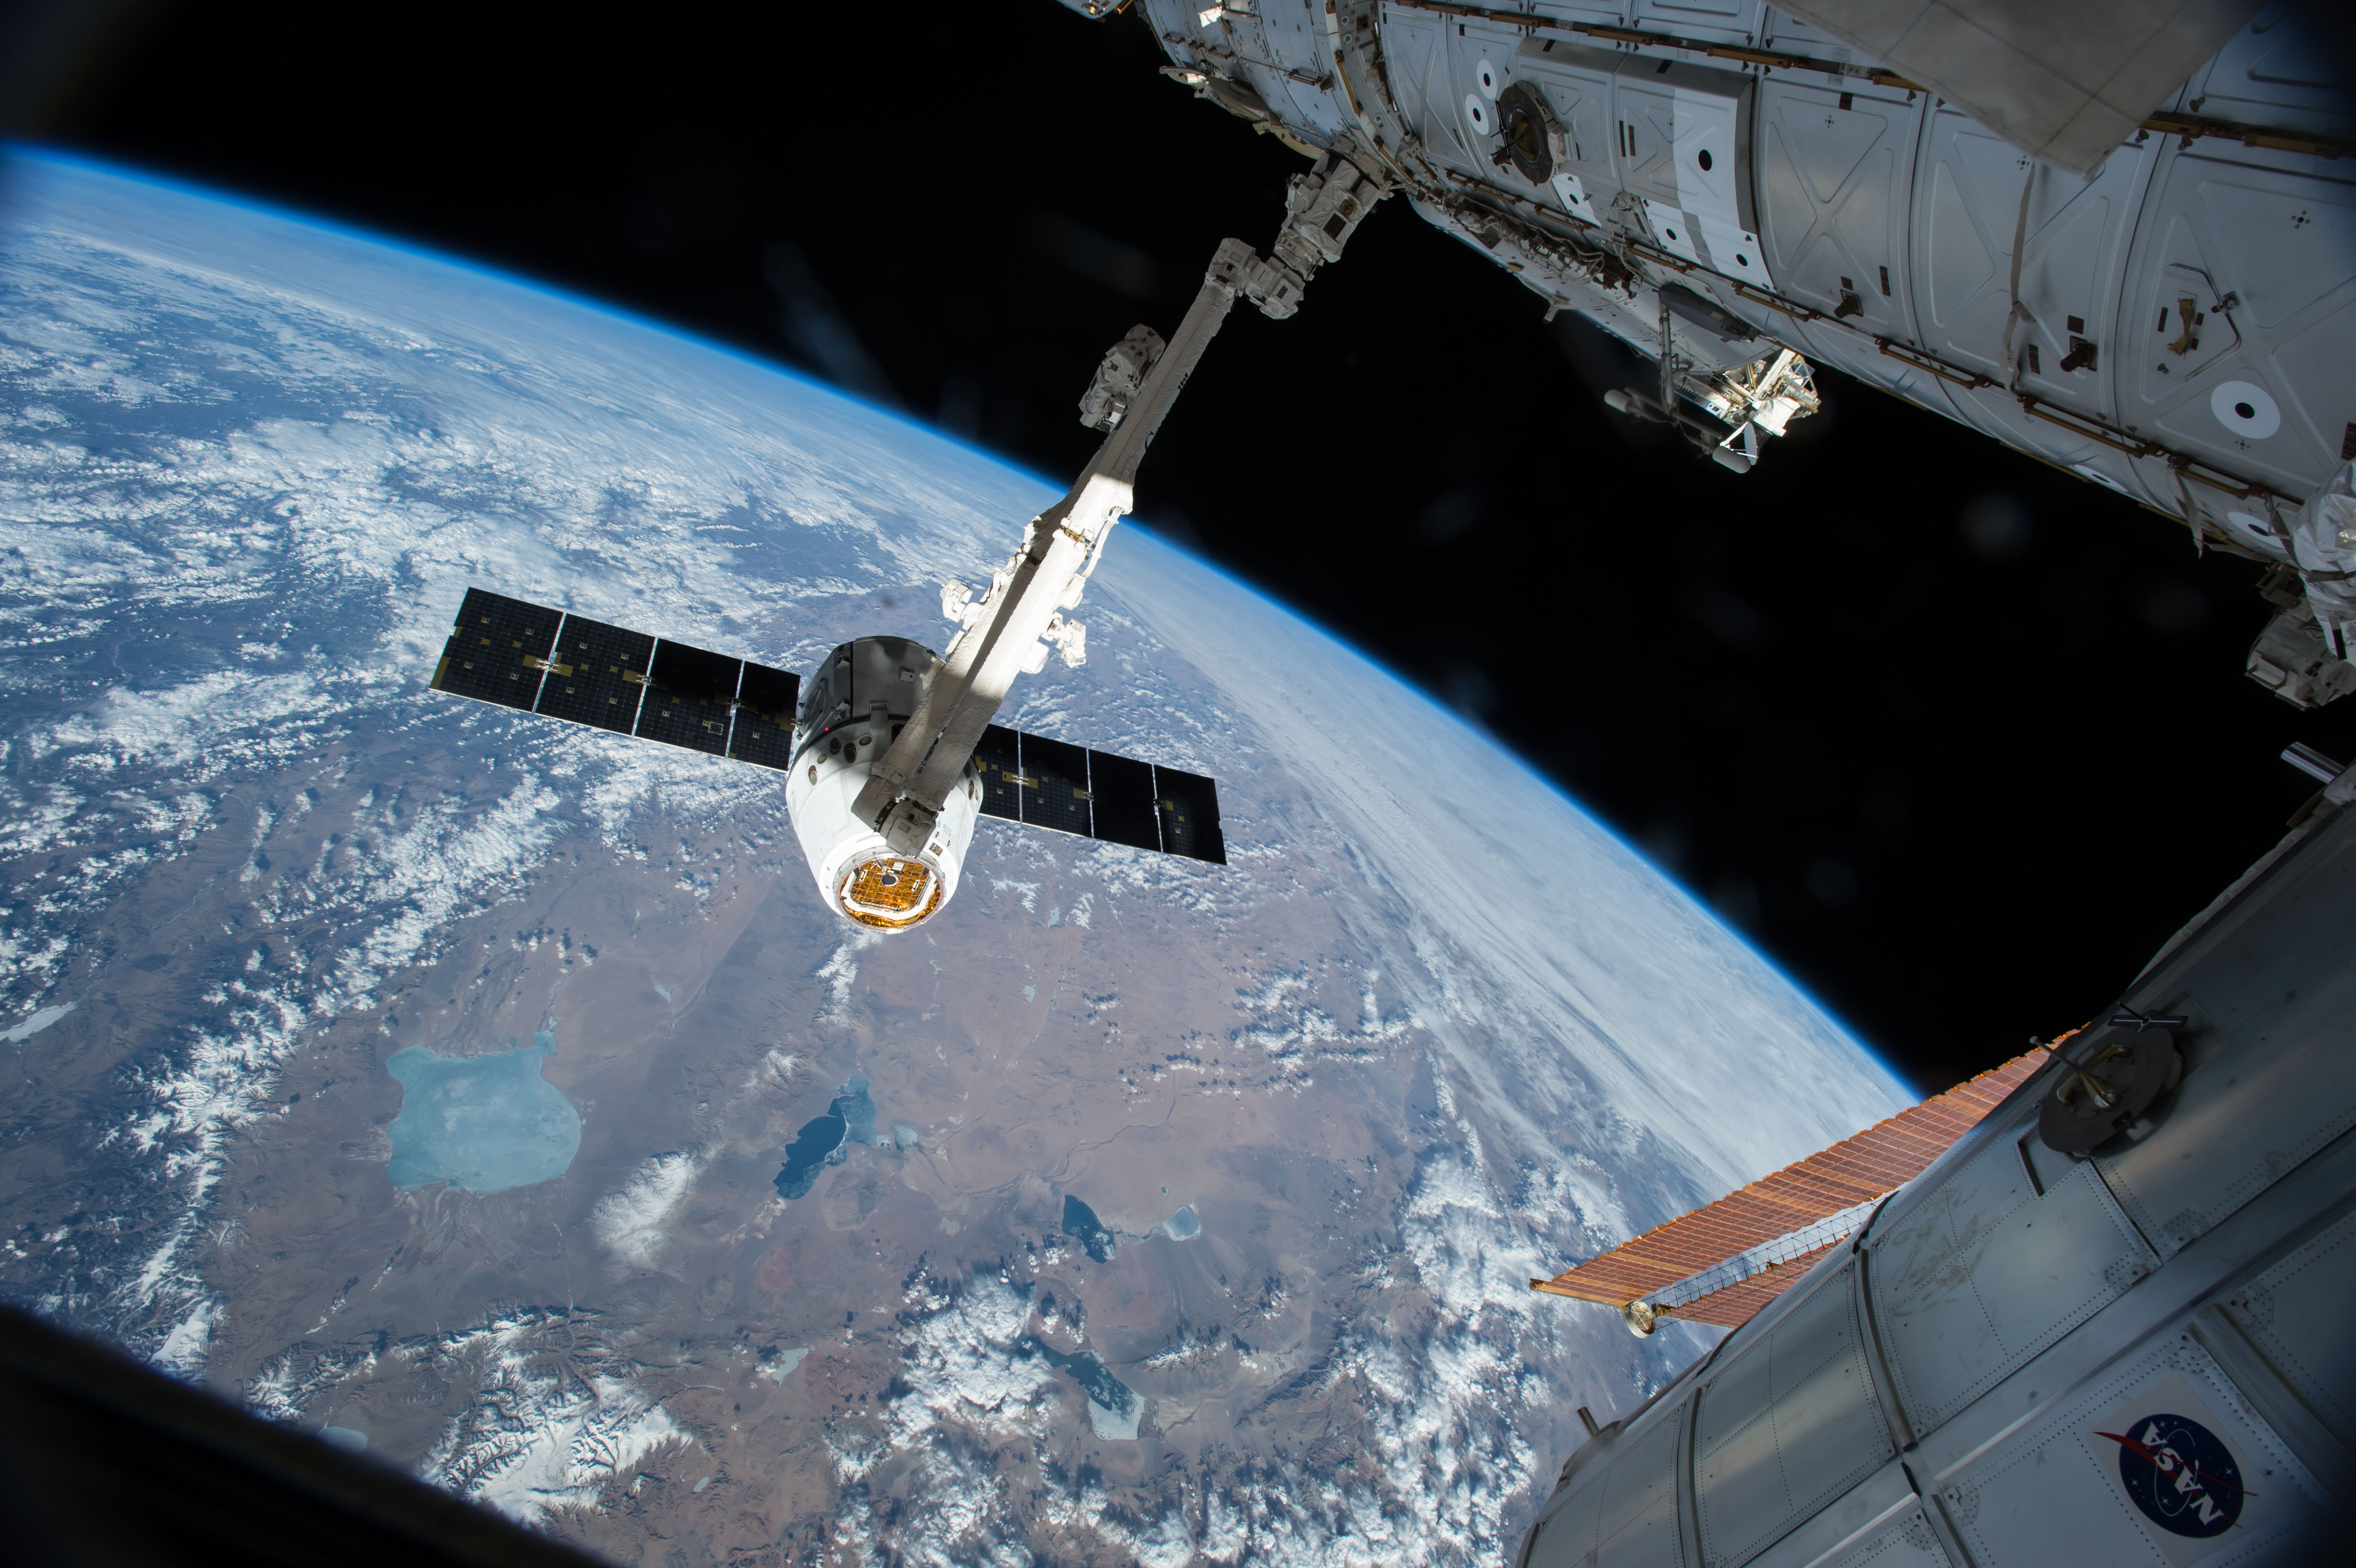 space station research the canadarm 2 reaches out to grapple the spacex dragon cargo spacecraft and prepare it to